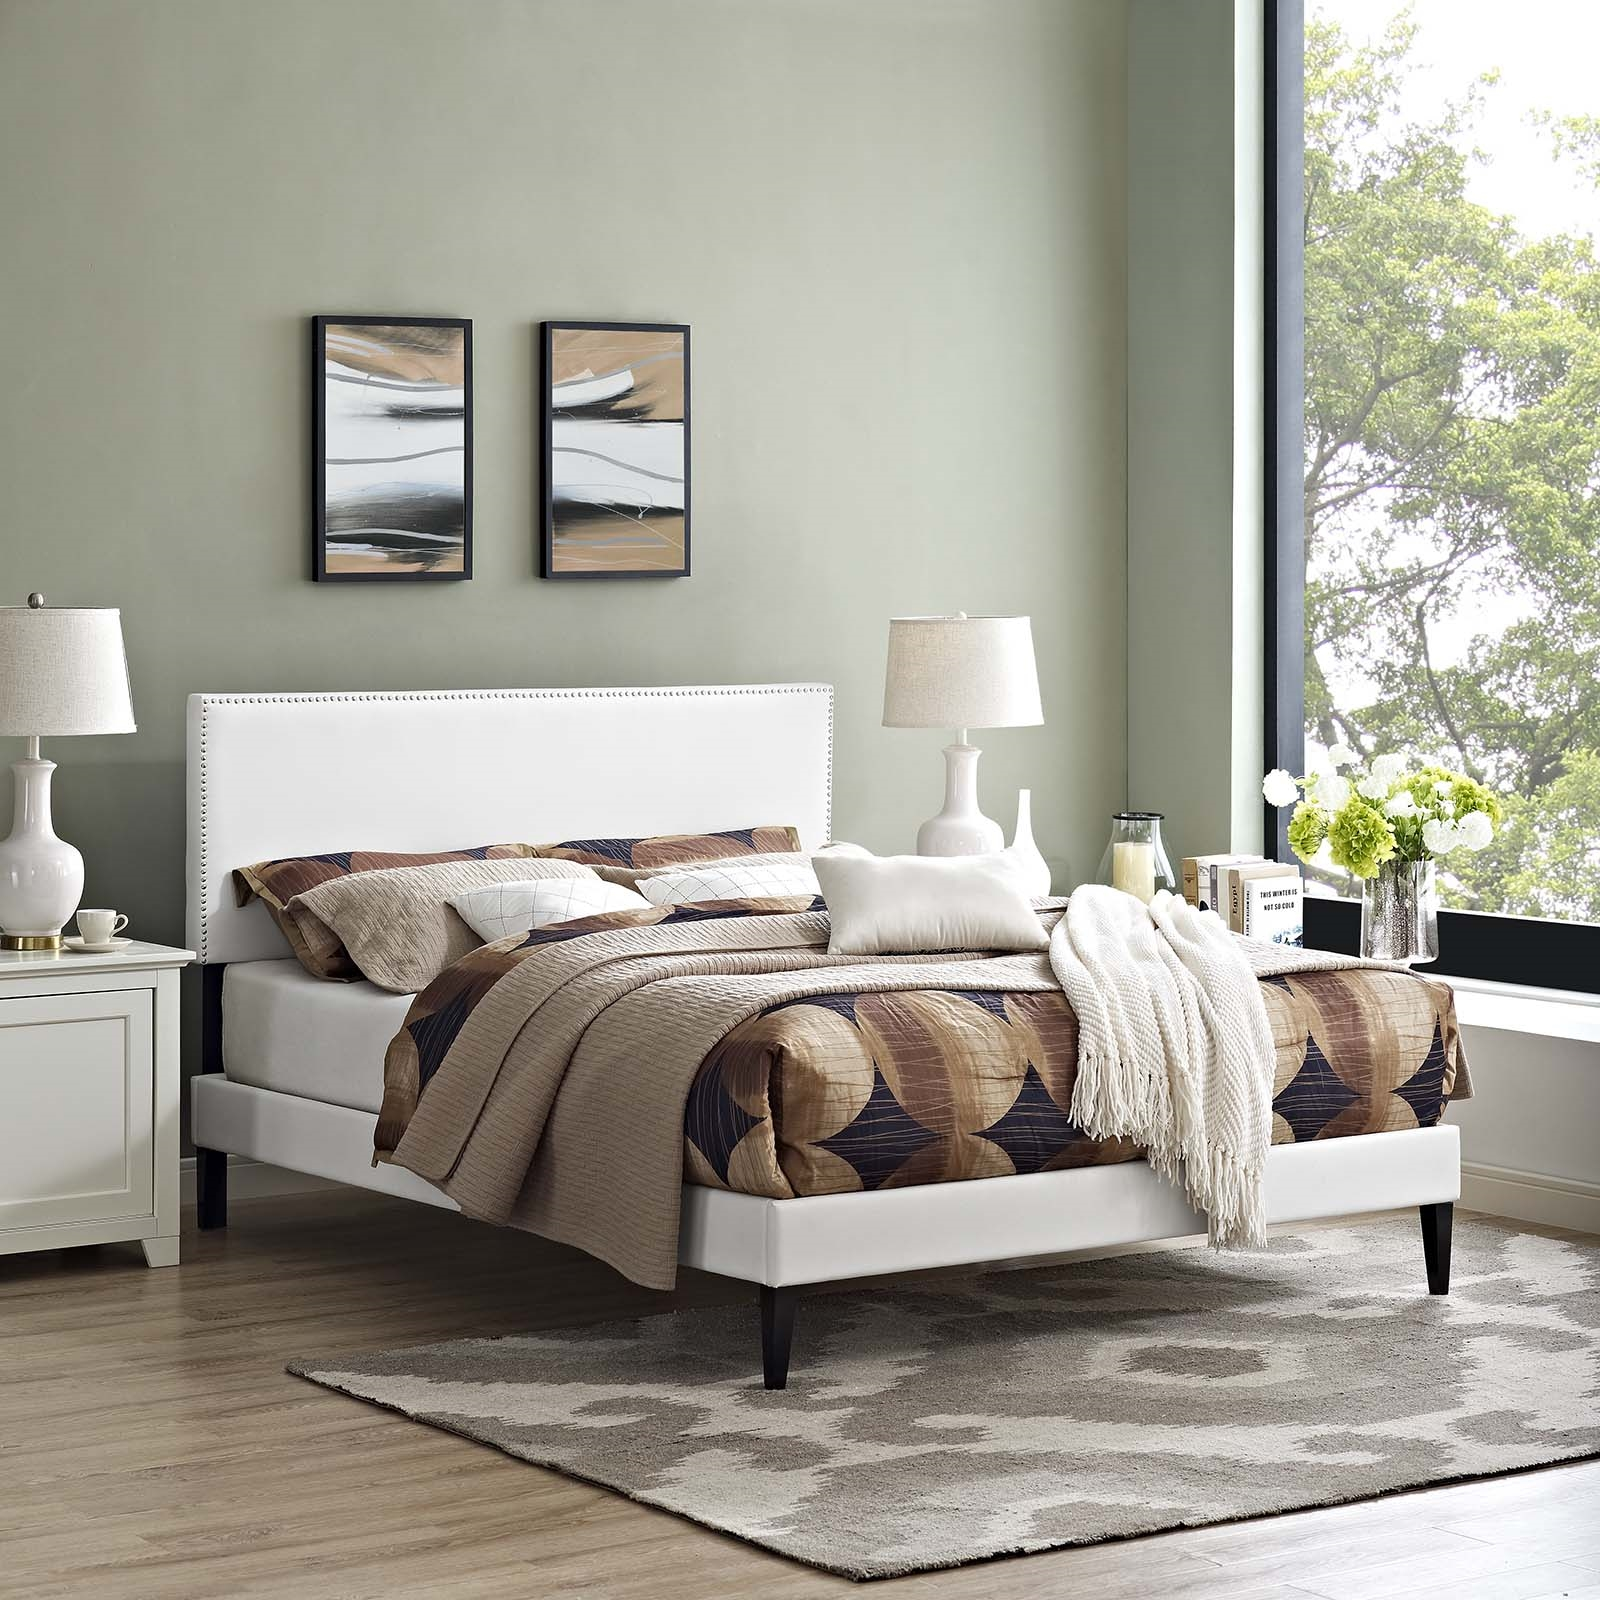 Macie King Vinyl Platform Bed with Squared Tapered Legs in White